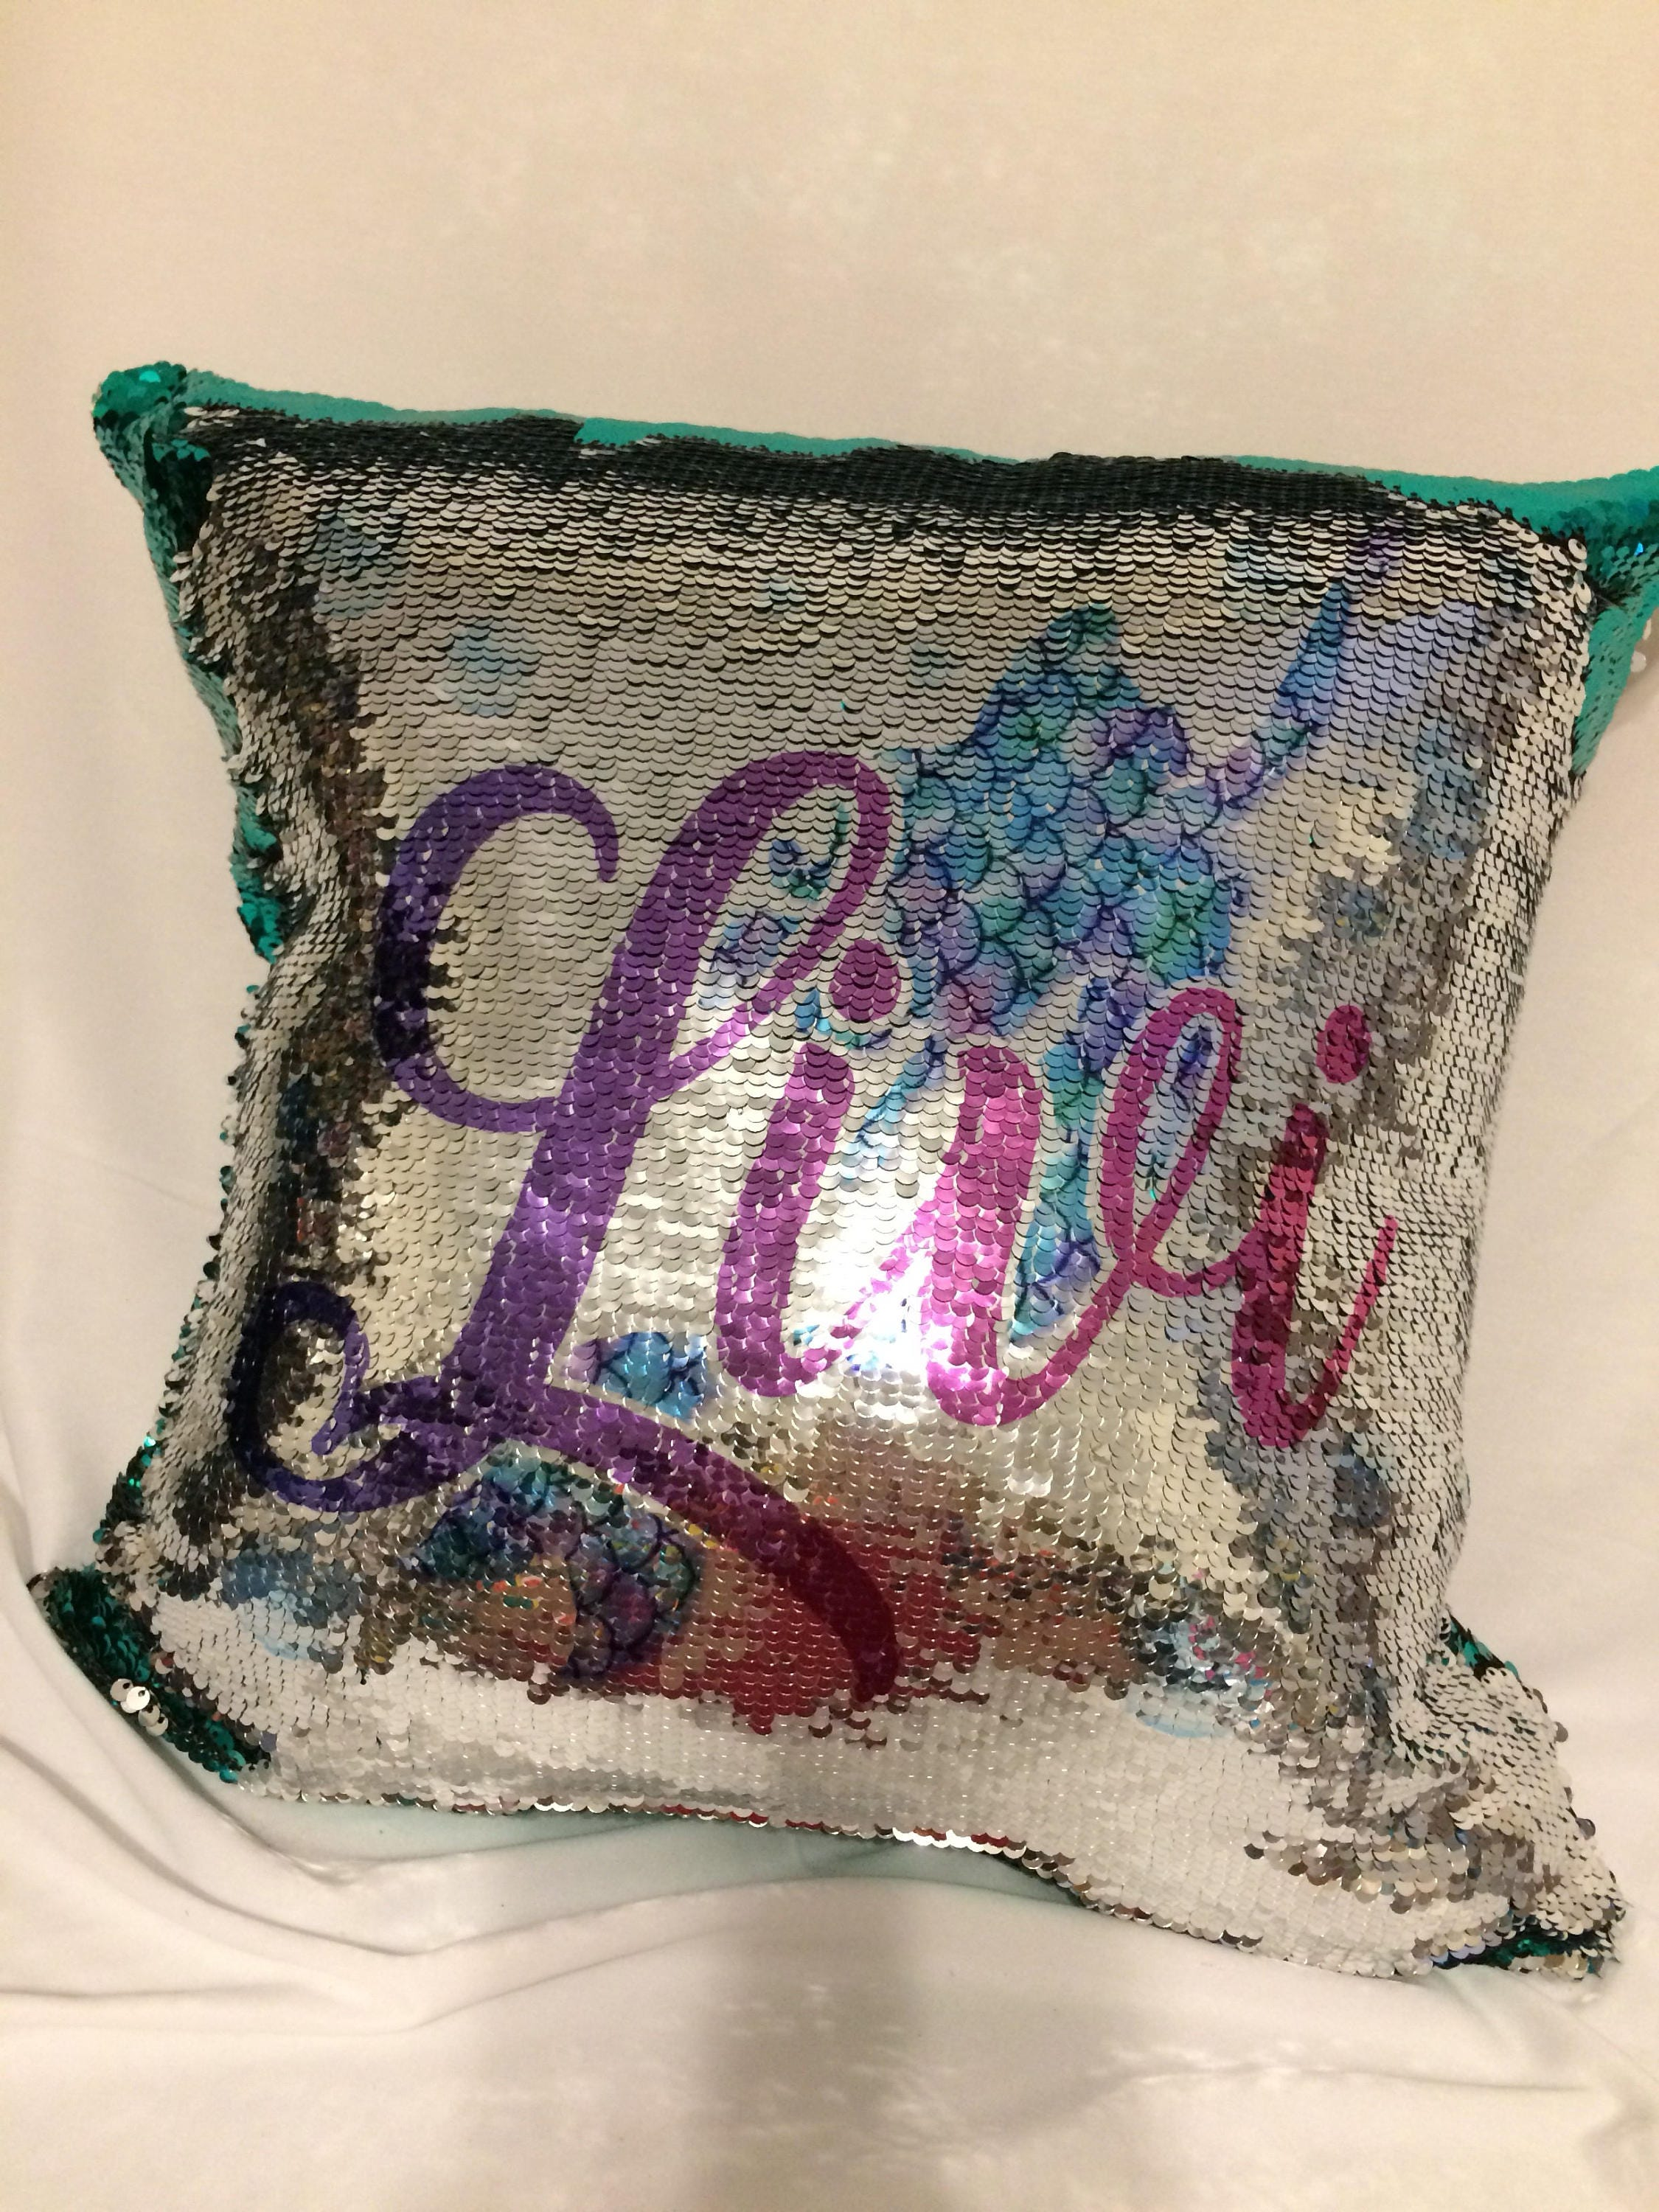 embroidered personalized il baby custom with keepsake pillow listing fullxfull sayings gift fqiv shower monogrammed pillows